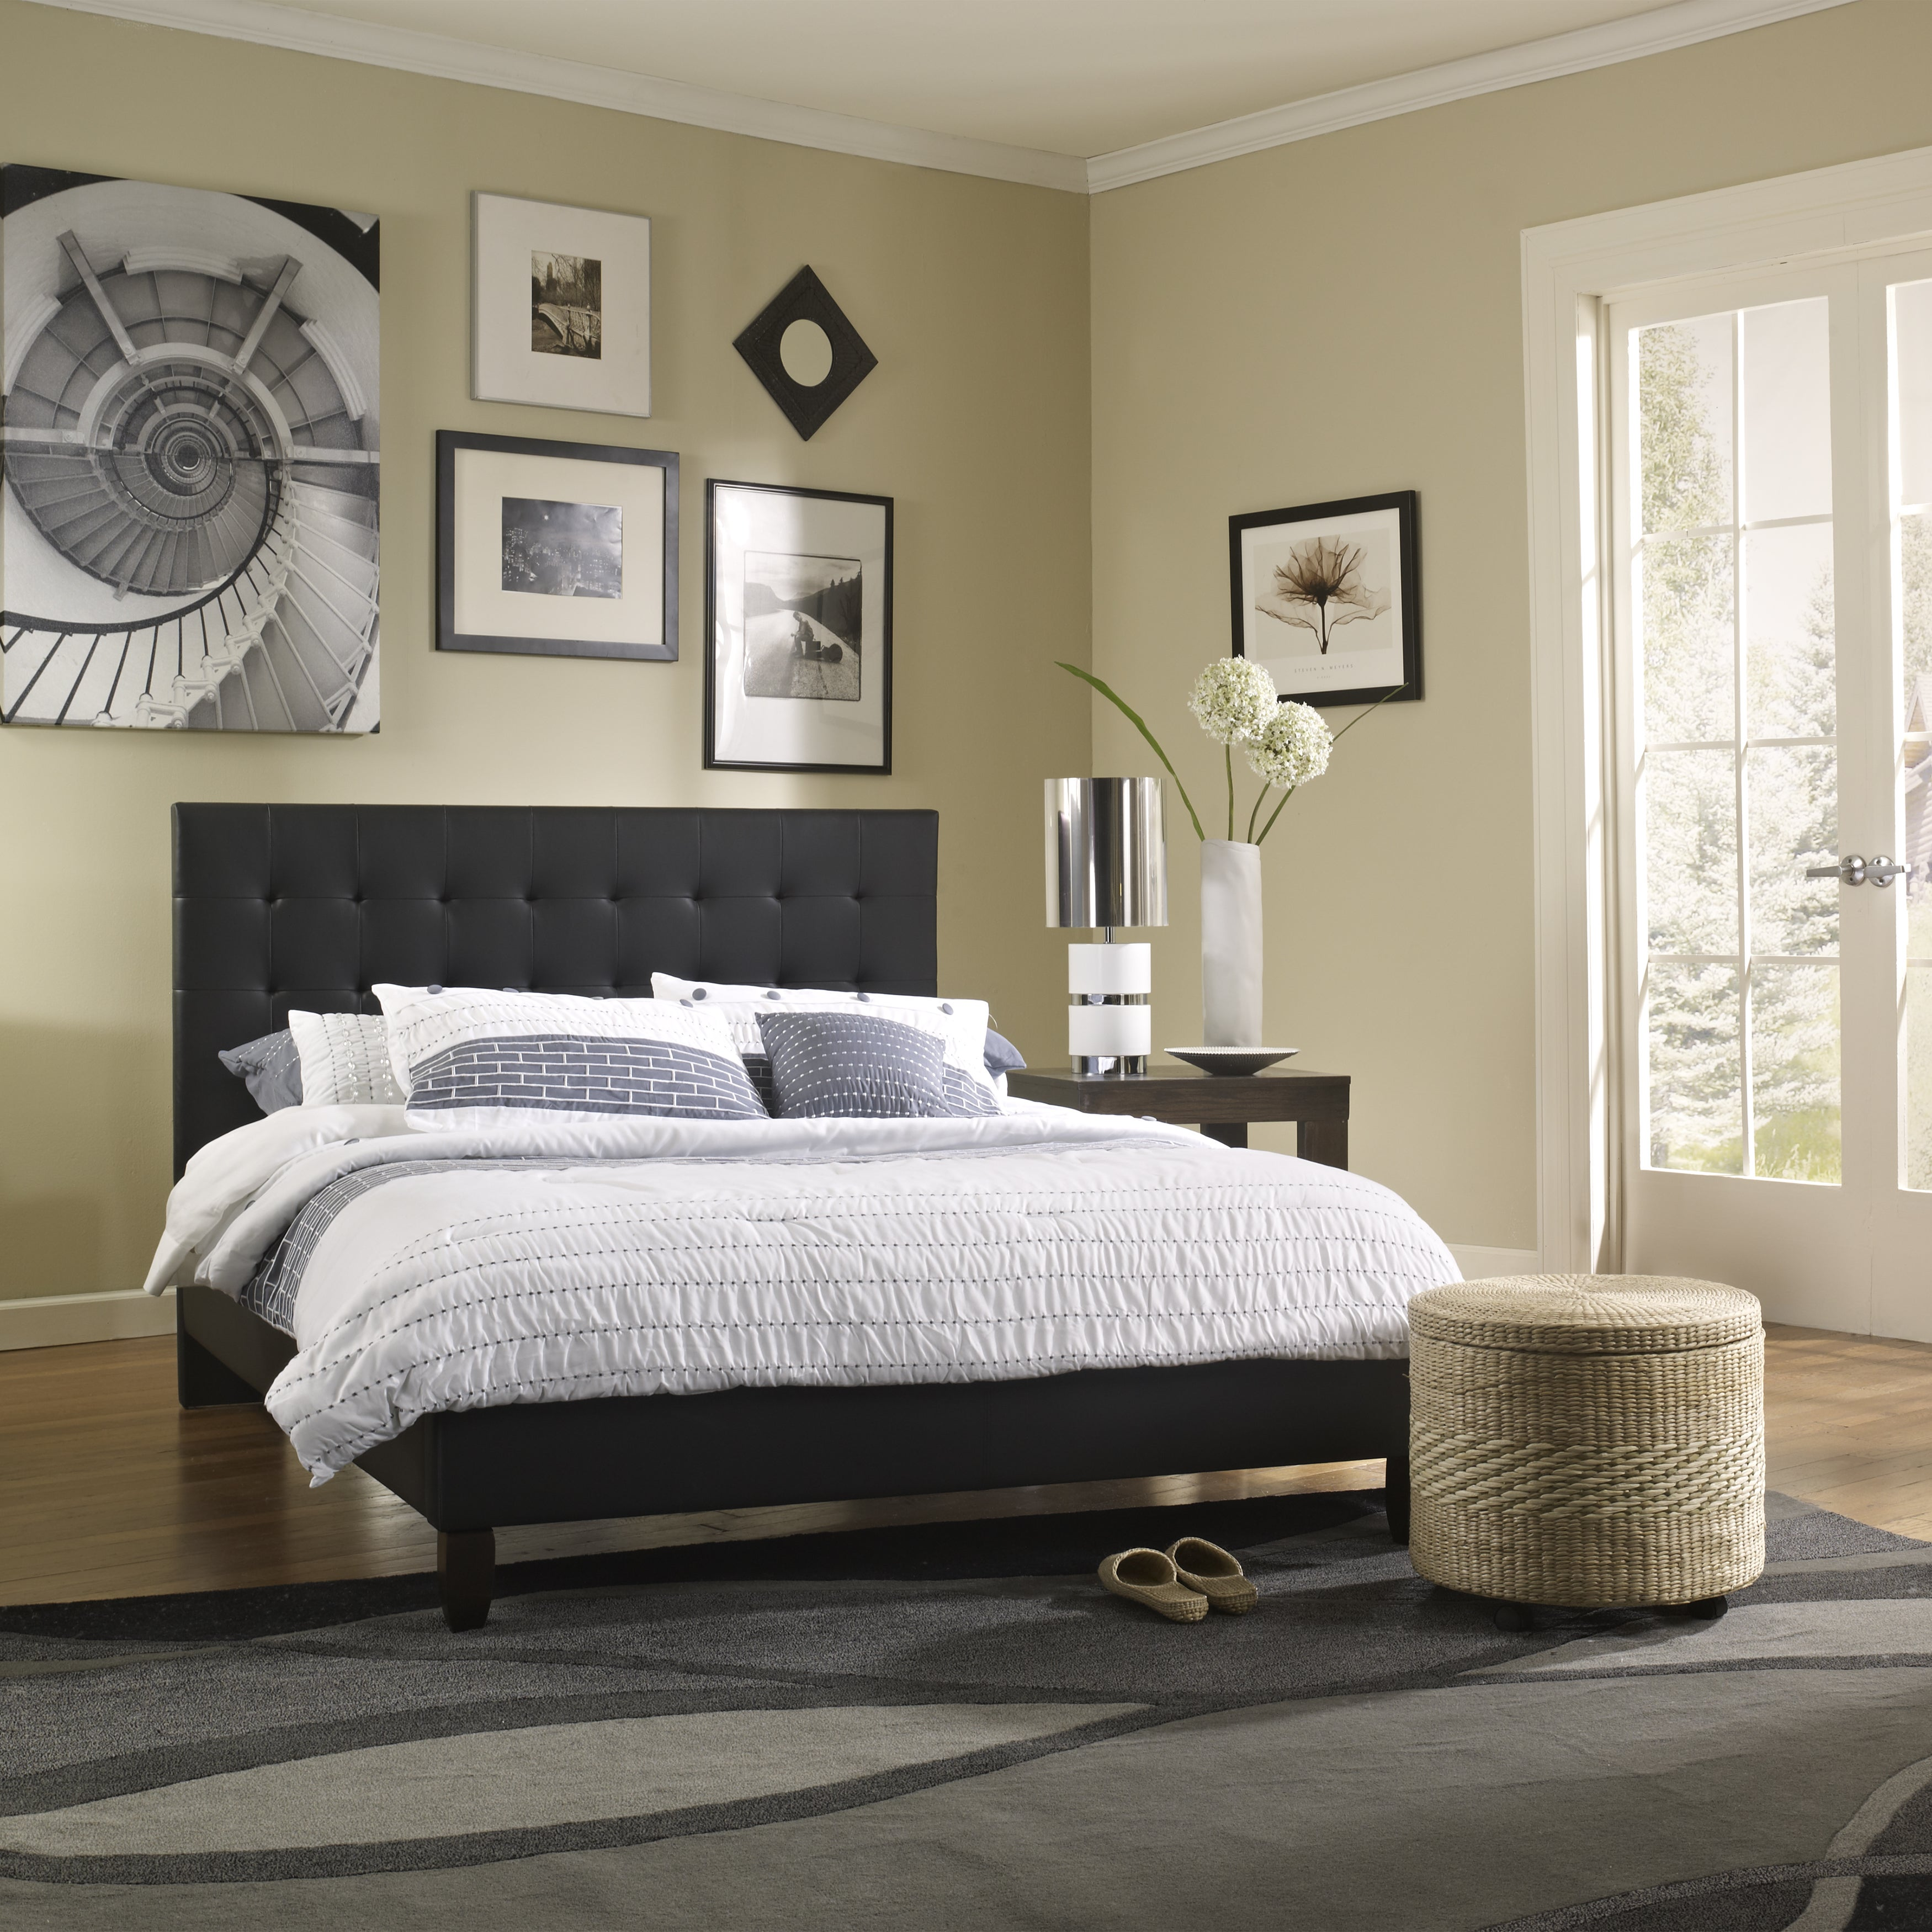 e15136801aa5 Shop Sleep Sync Waverly Upholstered Black Leather Platform Bed - Free  Shipping On Orders Over  45 - Overstock - 9243049